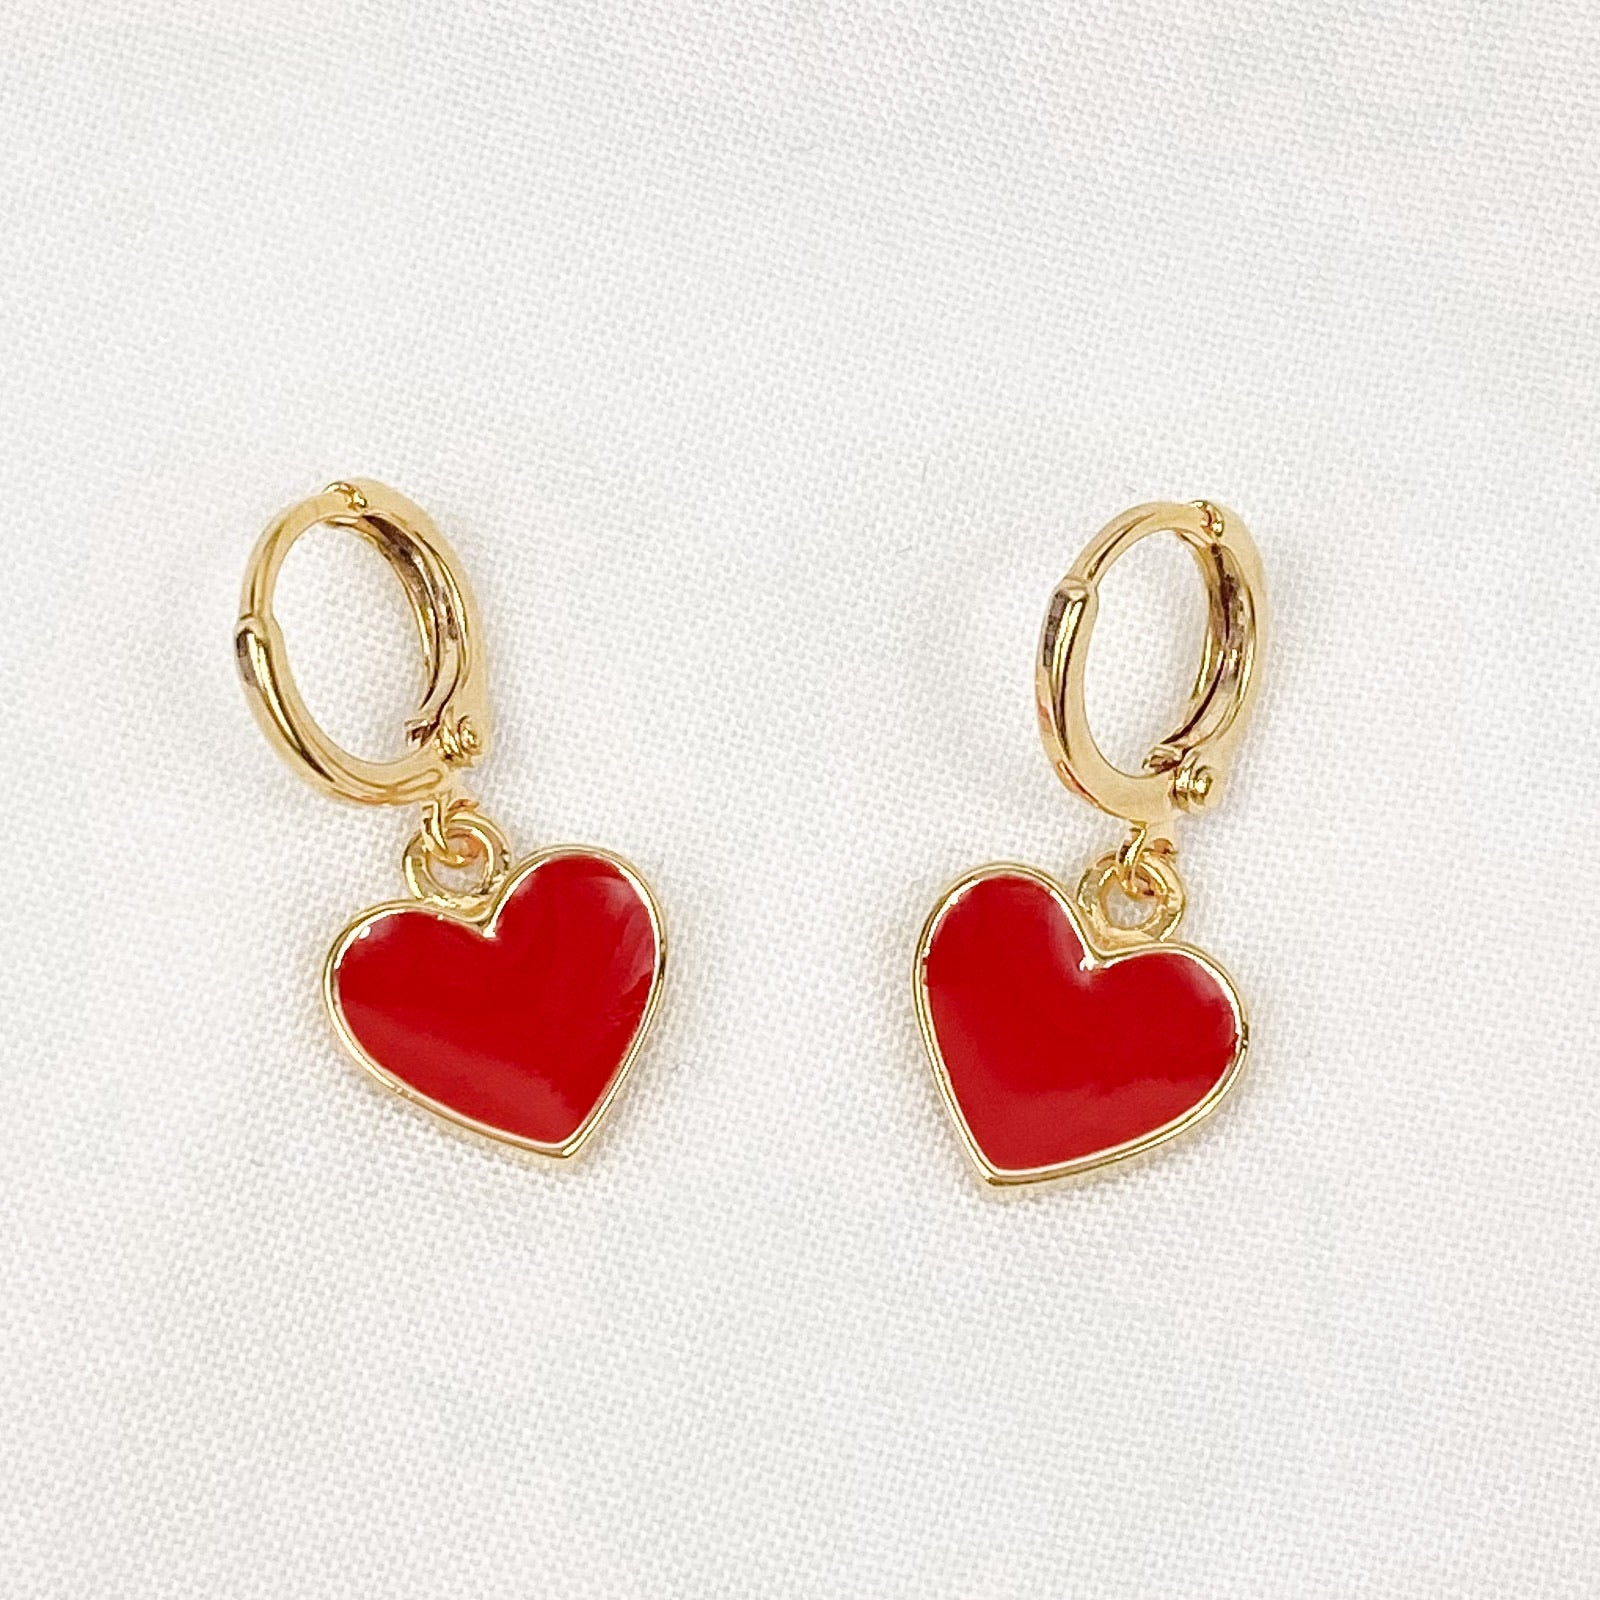 Red Enamel Love Heart Earrings